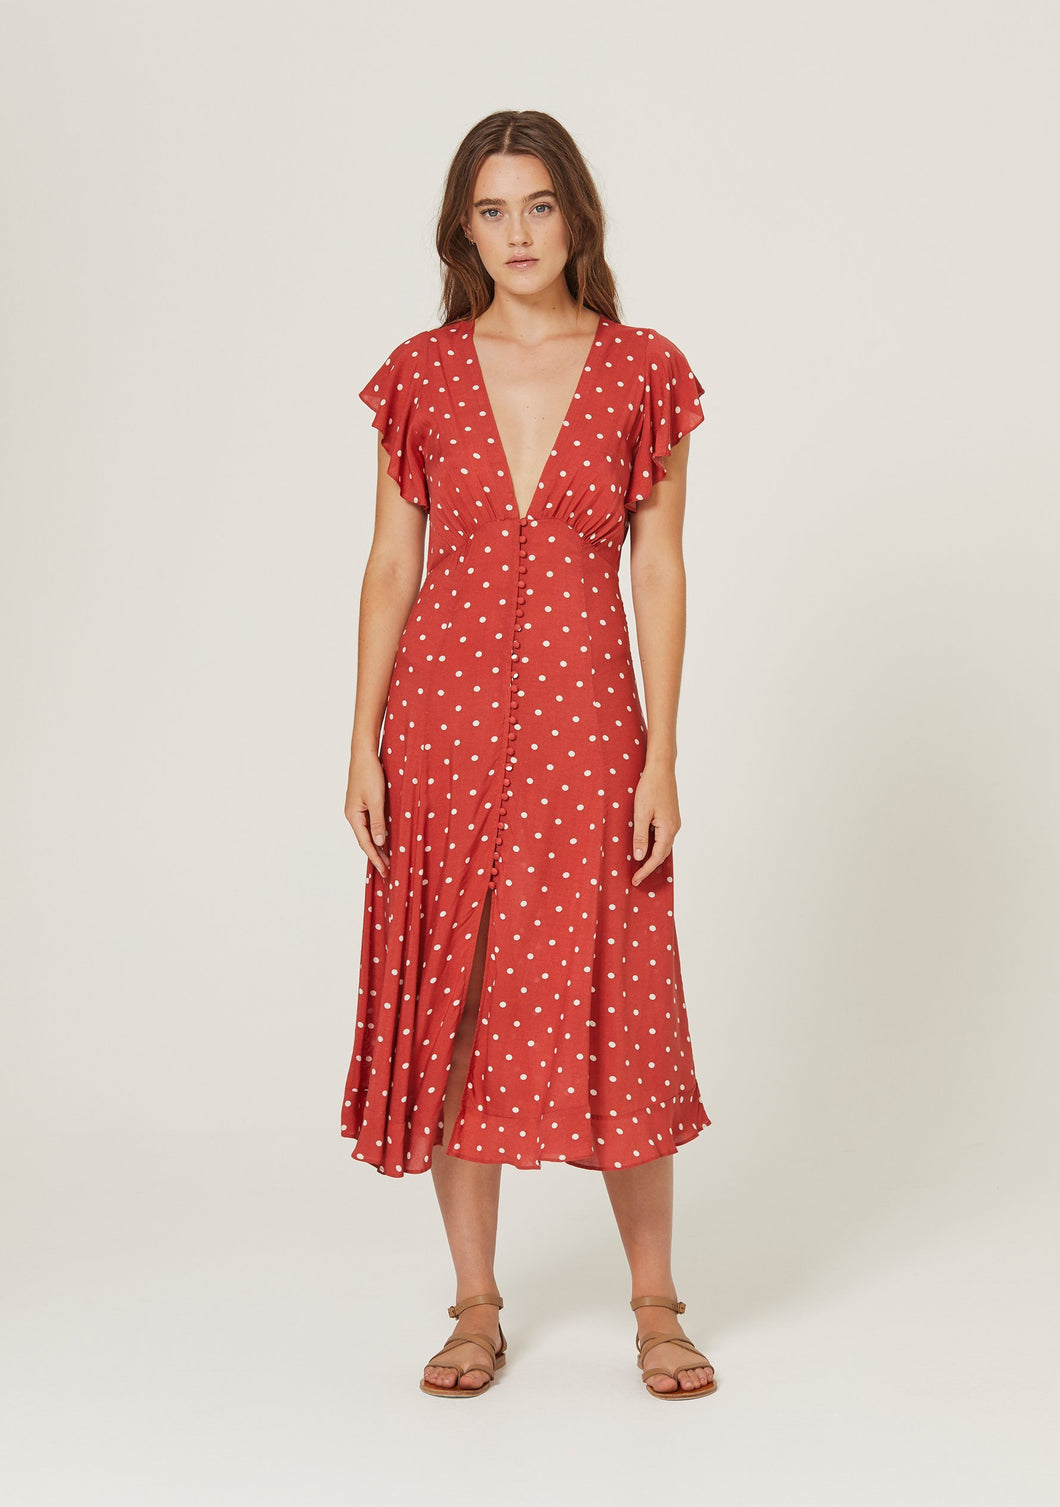 Polly Sunday Midi Dress